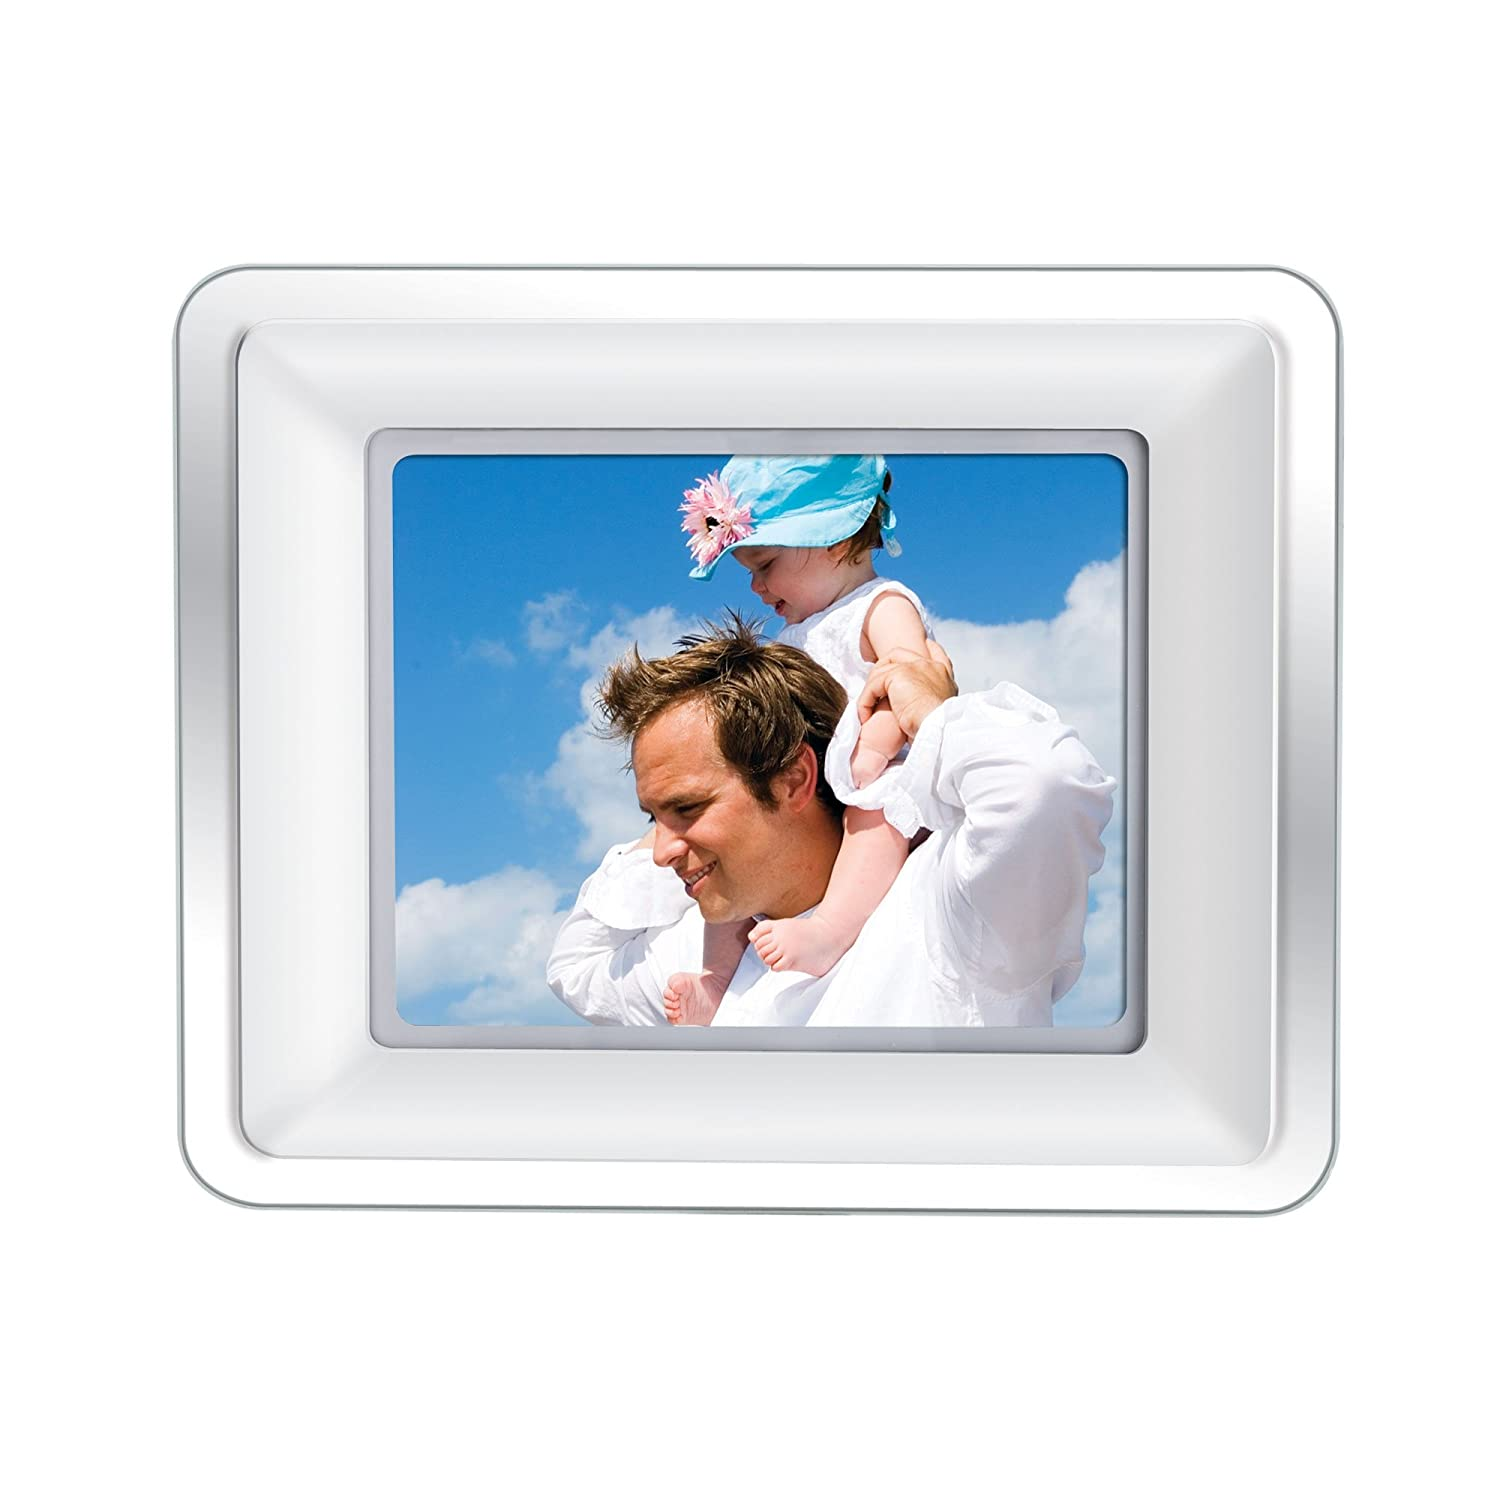 Amazon.com : Coby DP562 5.6-Inch Digital Photo Frame with MP3 Player :  Digital Picture Frames : Camera & Photo